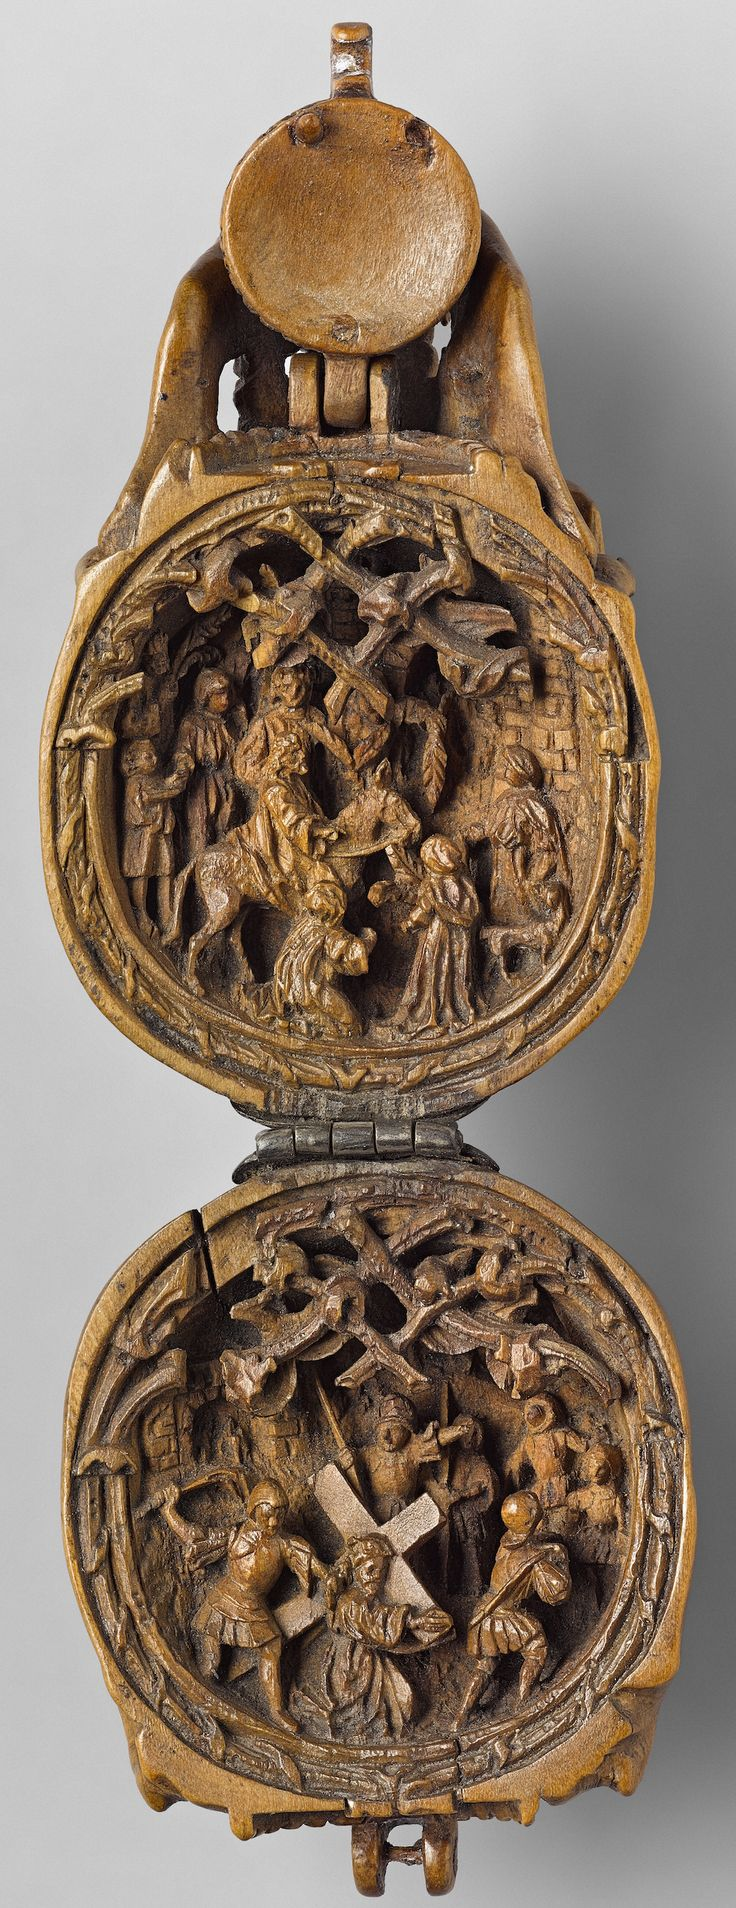 Carved the size of a palm or smaller, these miniature boxwood carvings featuring religious iconography from the early 16th century have long been a mystery to researchers in the field. It is believed that the entire body of work was created during a 30-year window between 1500 and 1530, somewhere in